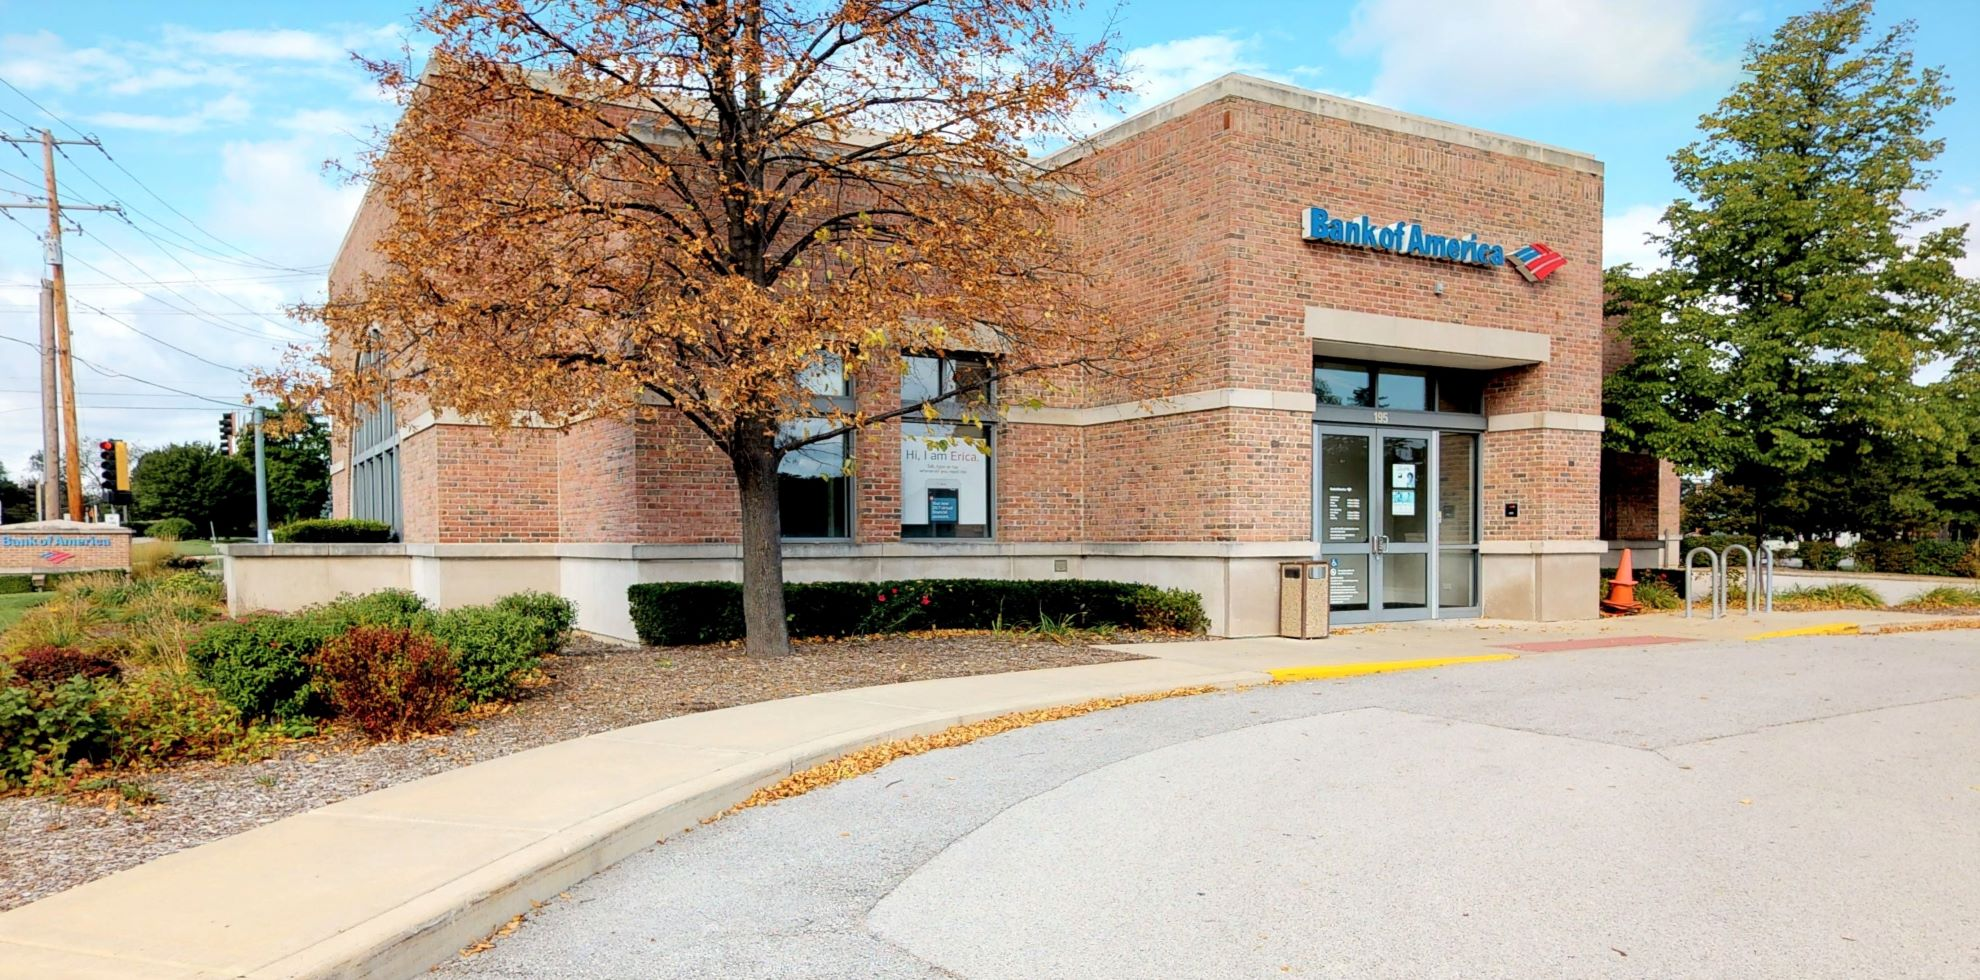 Bank of America financial center with drive-thru ATM and teller | 195 Milwaukee Ave, Lincolnshire, IL 60069